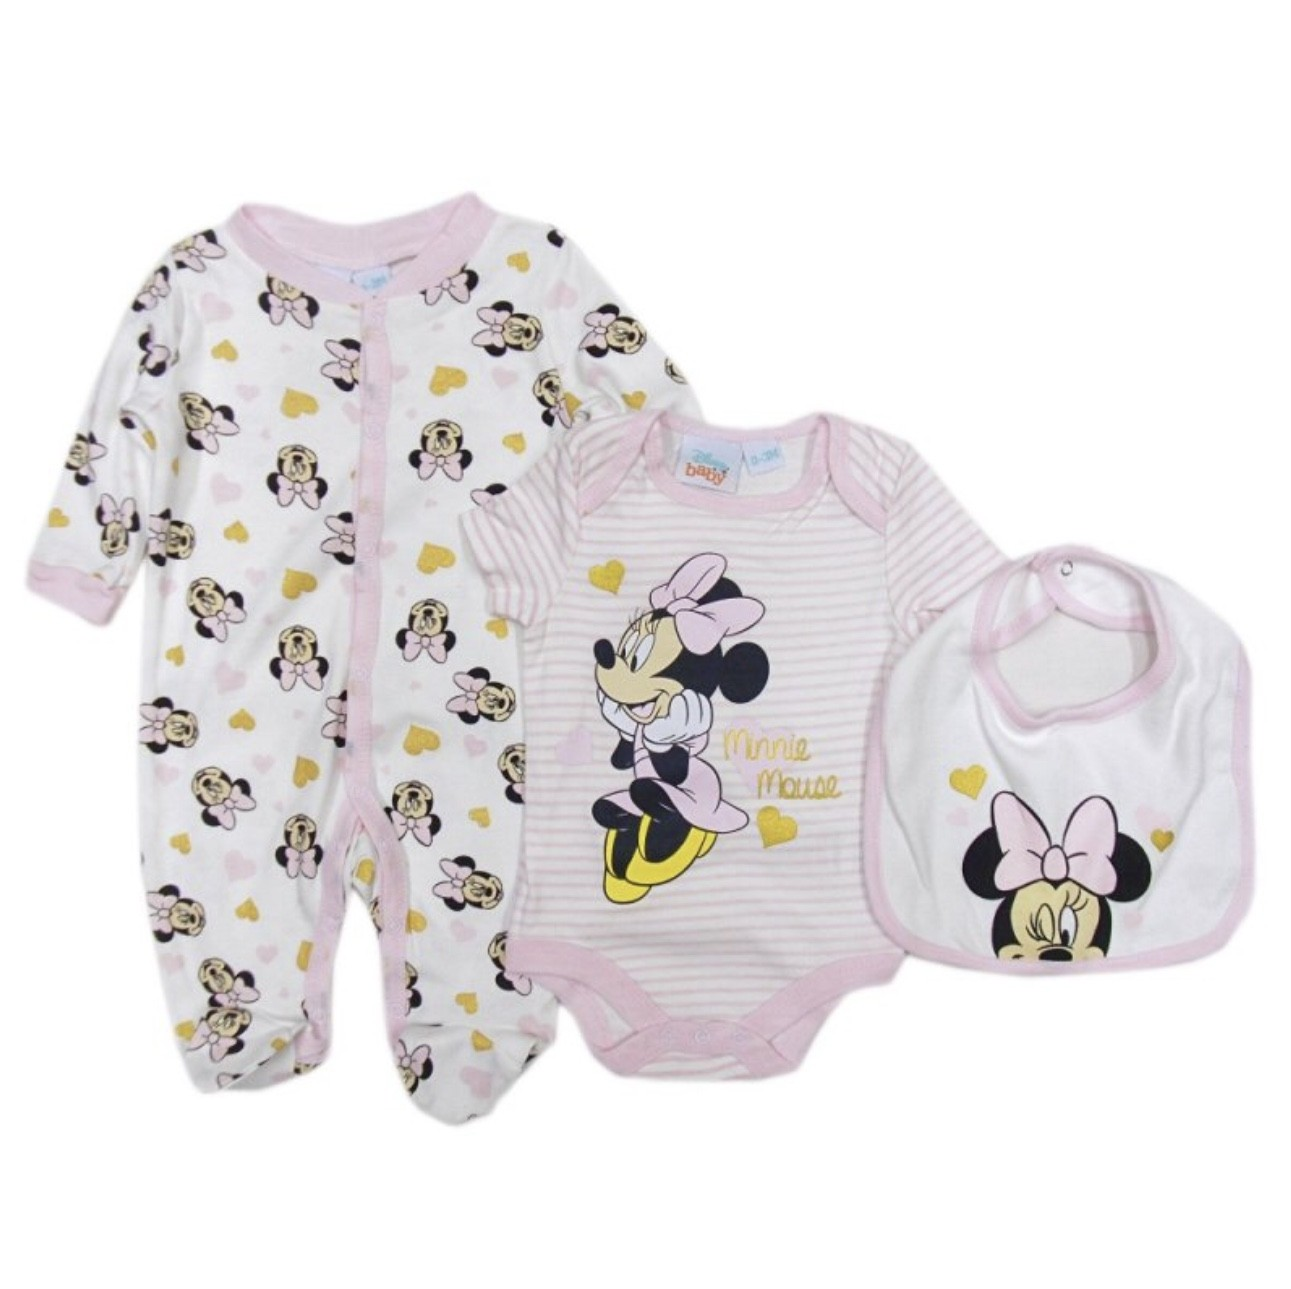 Disney Baby 'Minnie Mouse' 3 Pieces Set PACK OF 6